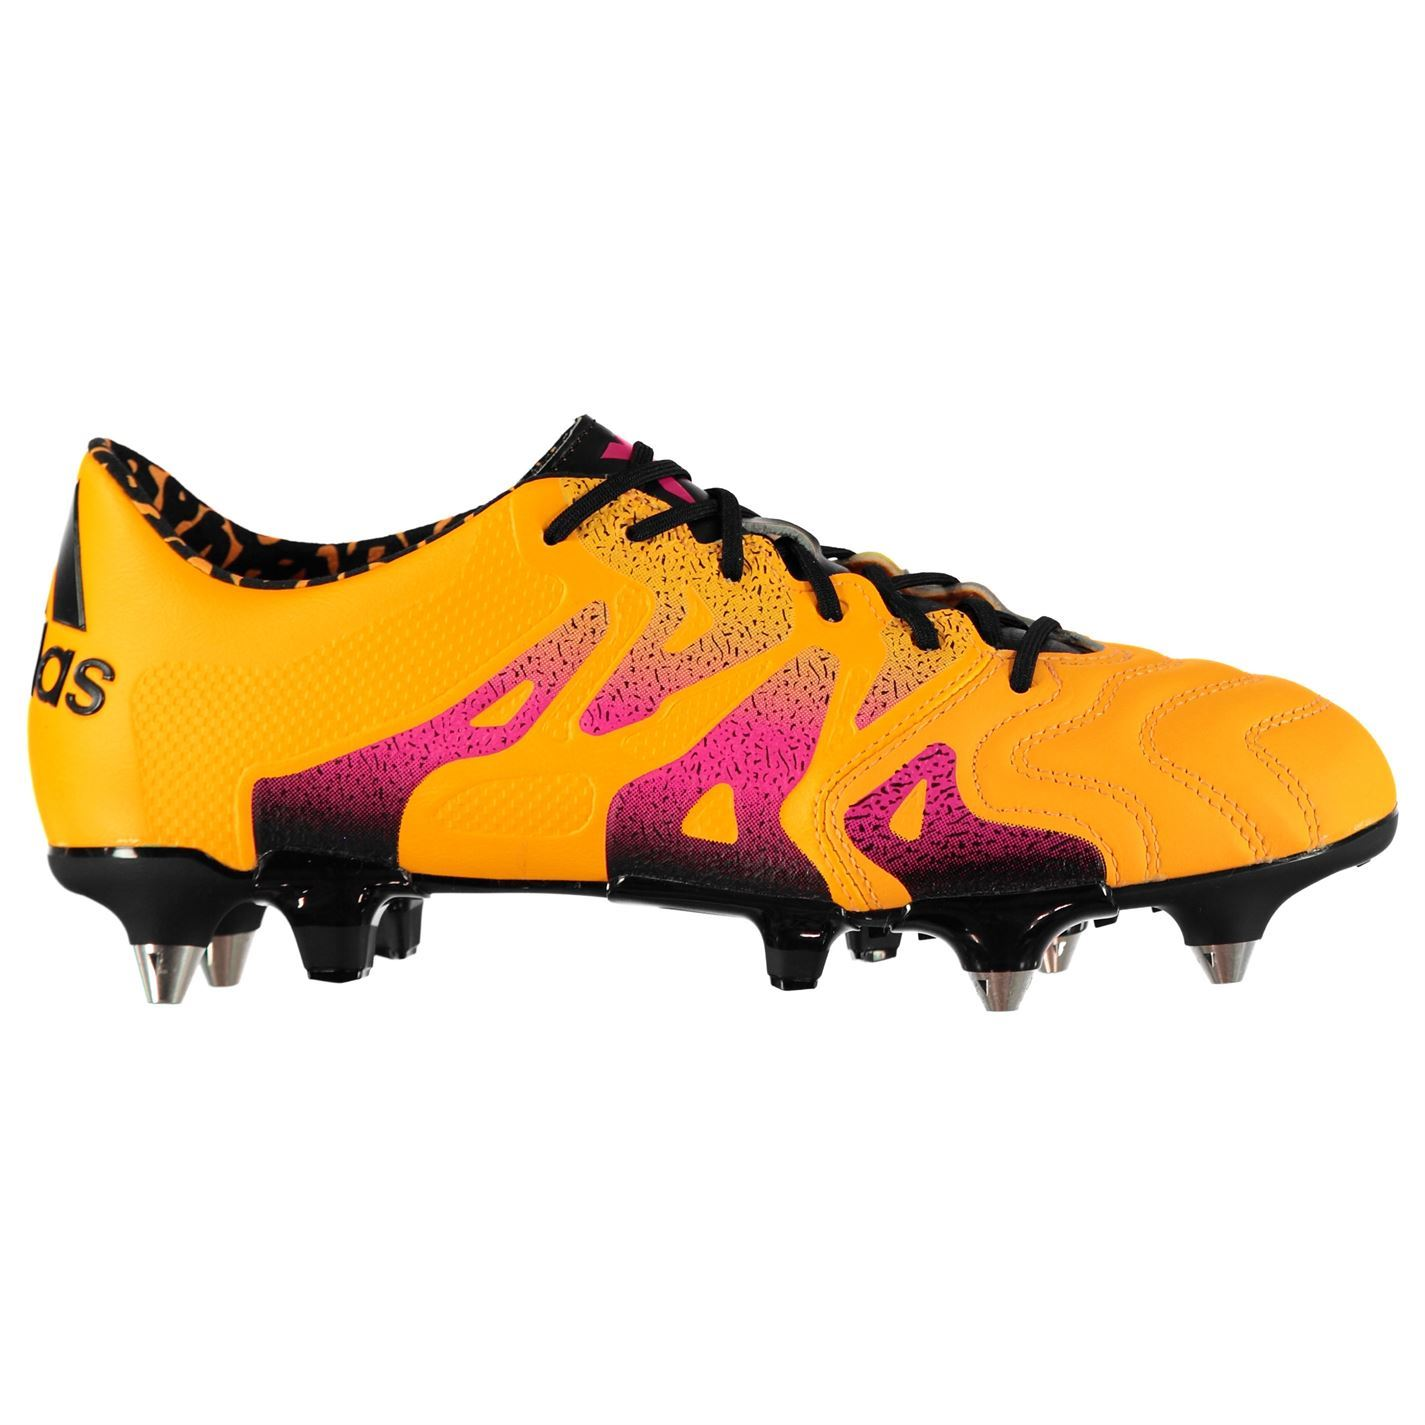 c8322c17d71 adidas X 15.1 Soft Ground Leather Football Boots Mens Gold Soccer Shoes  Cleats